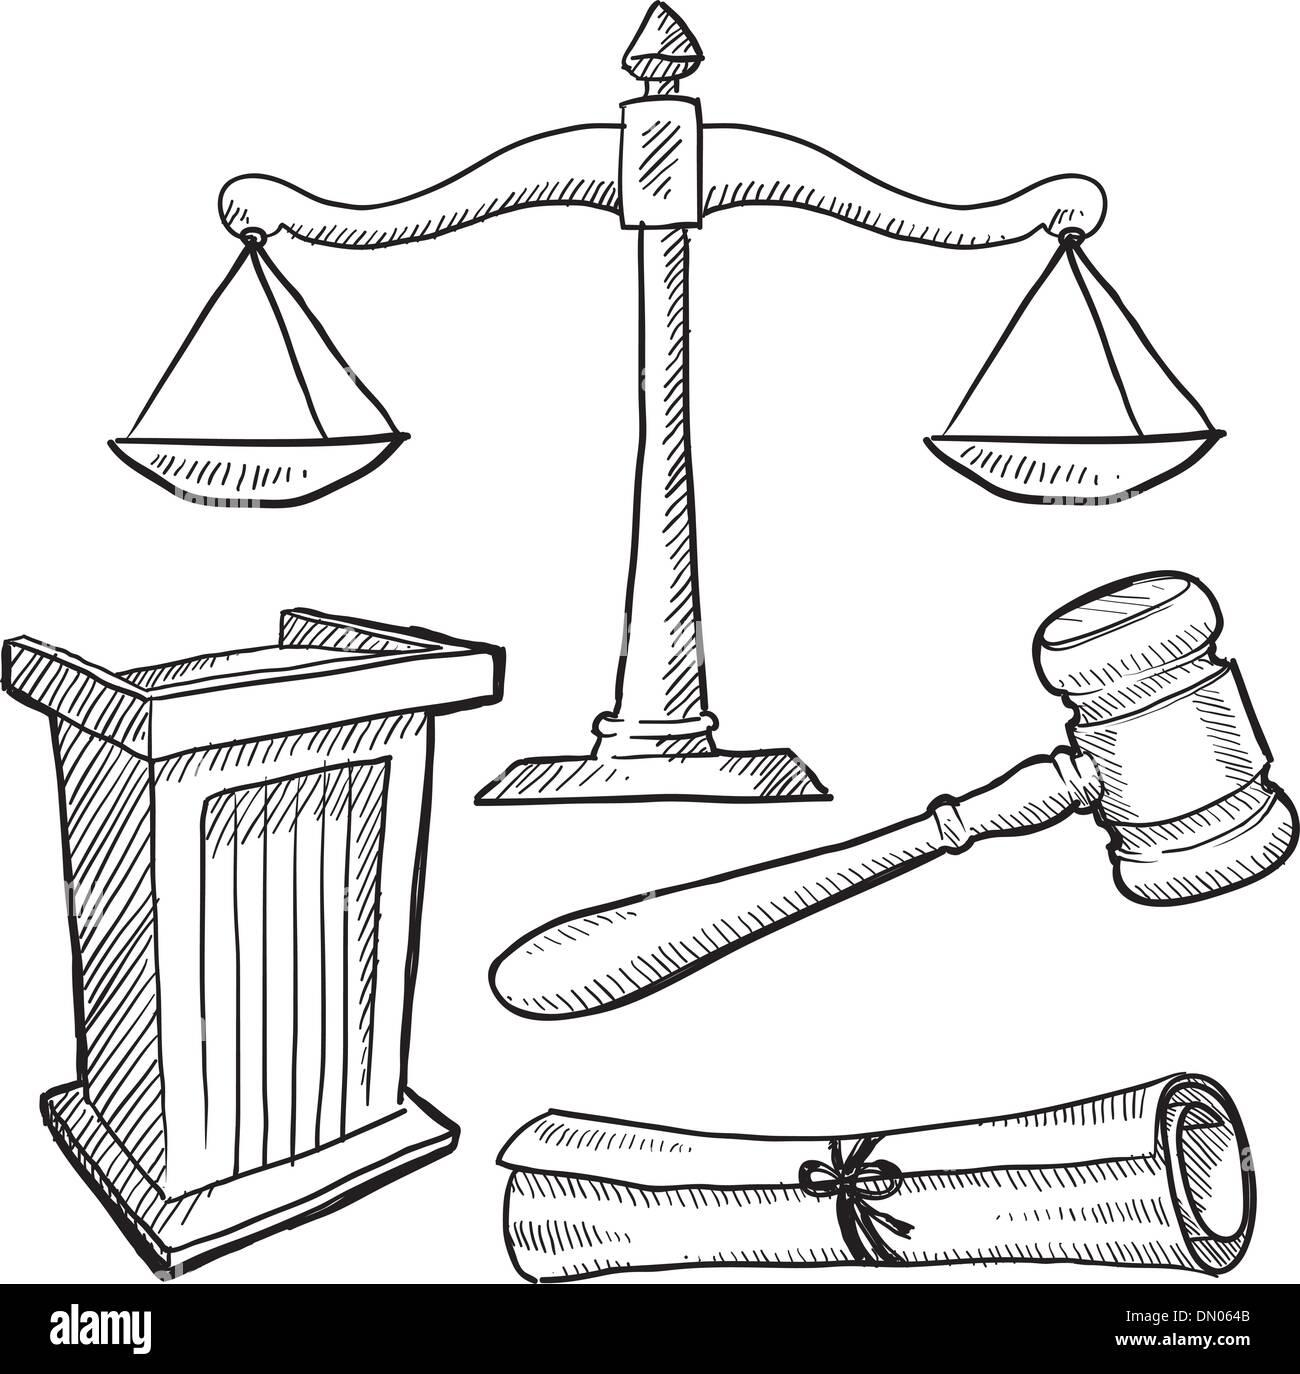 hight resolution of courtroom objects sketch stock vector